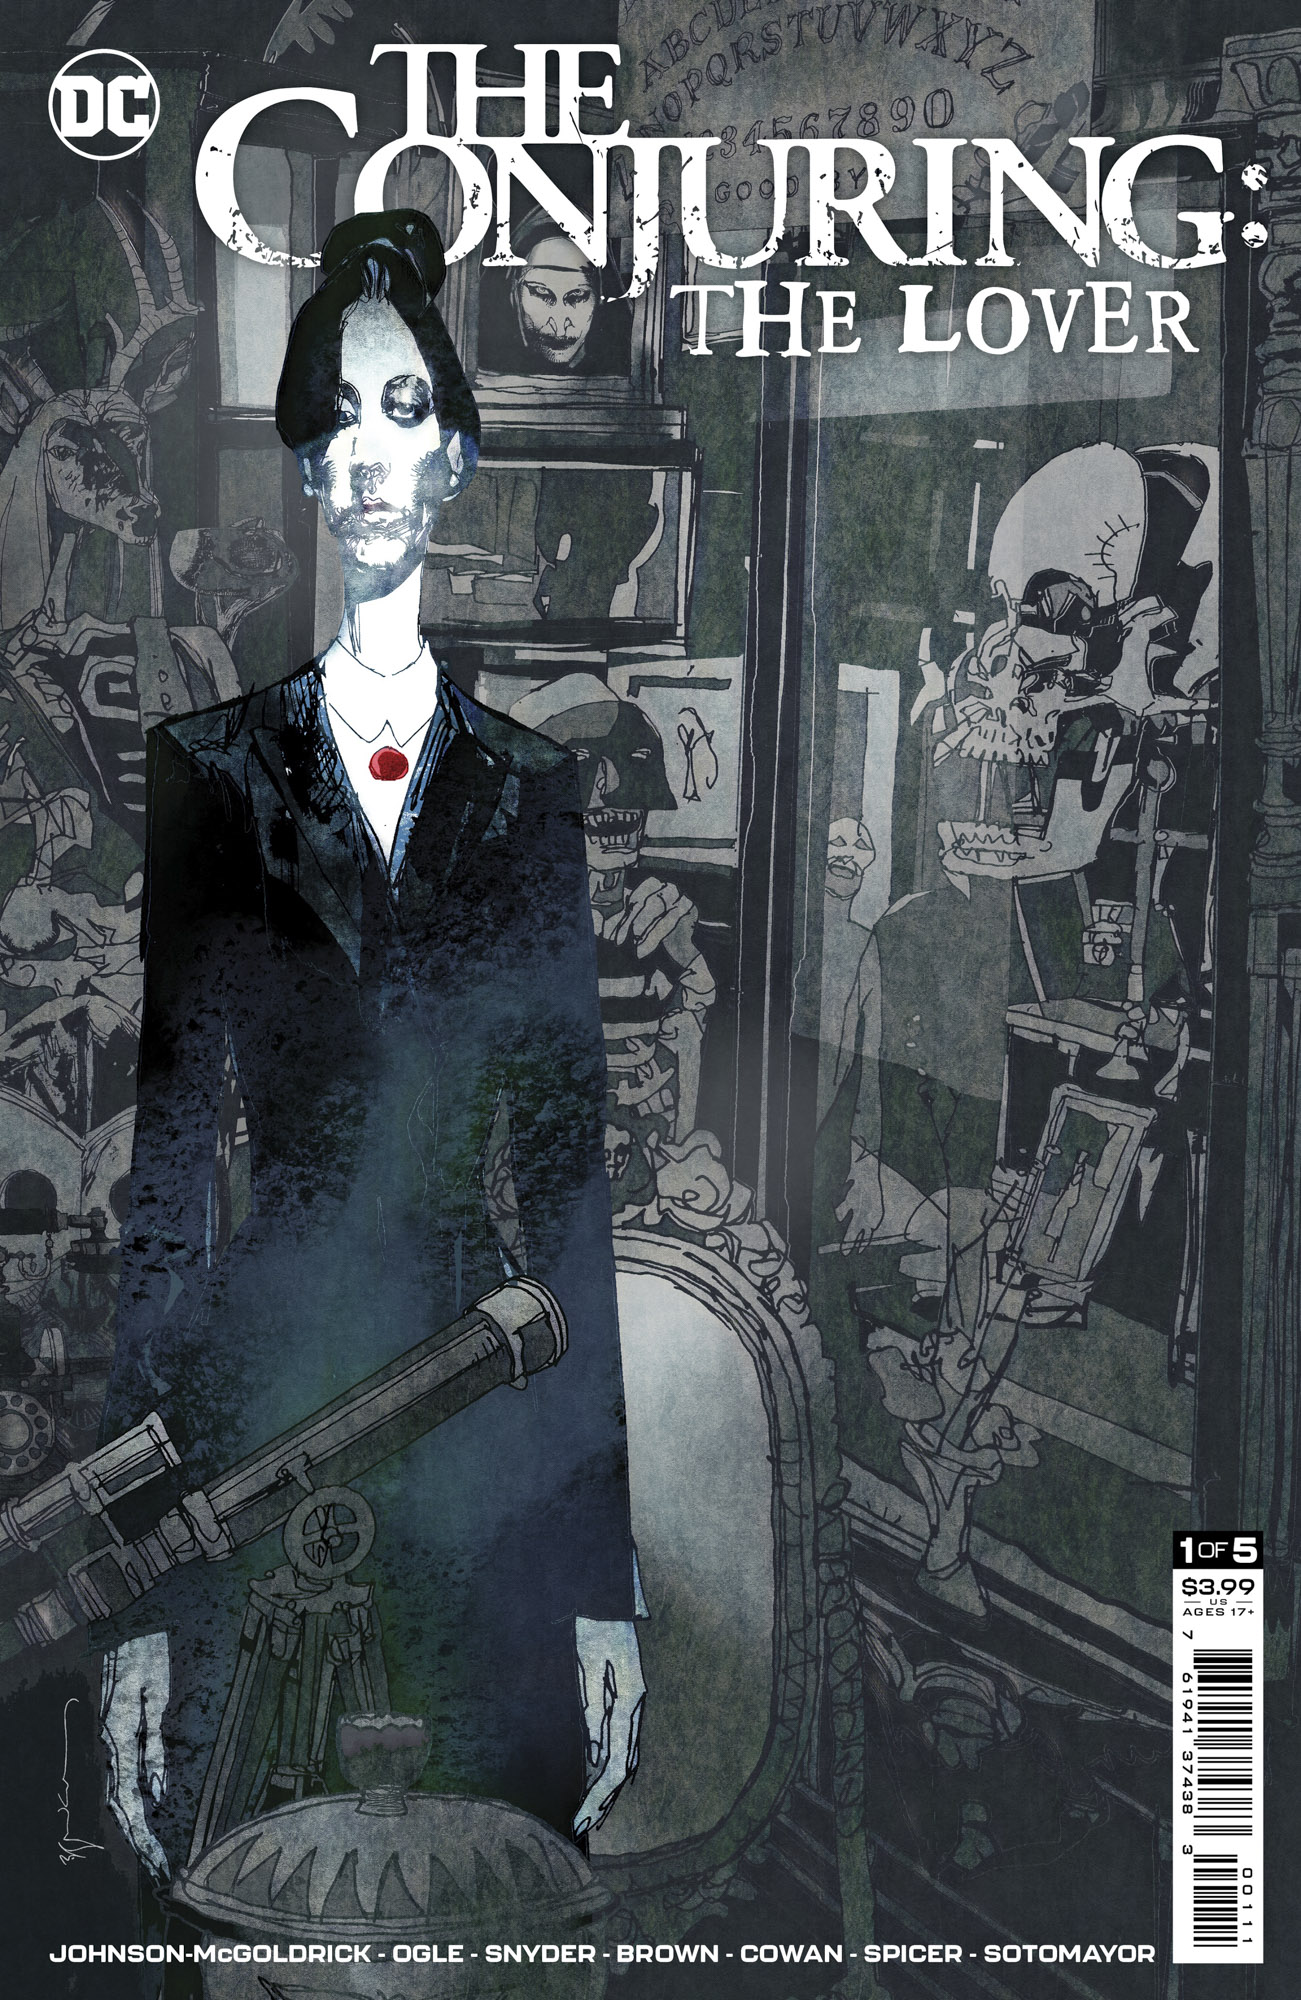 The Conjuring comic